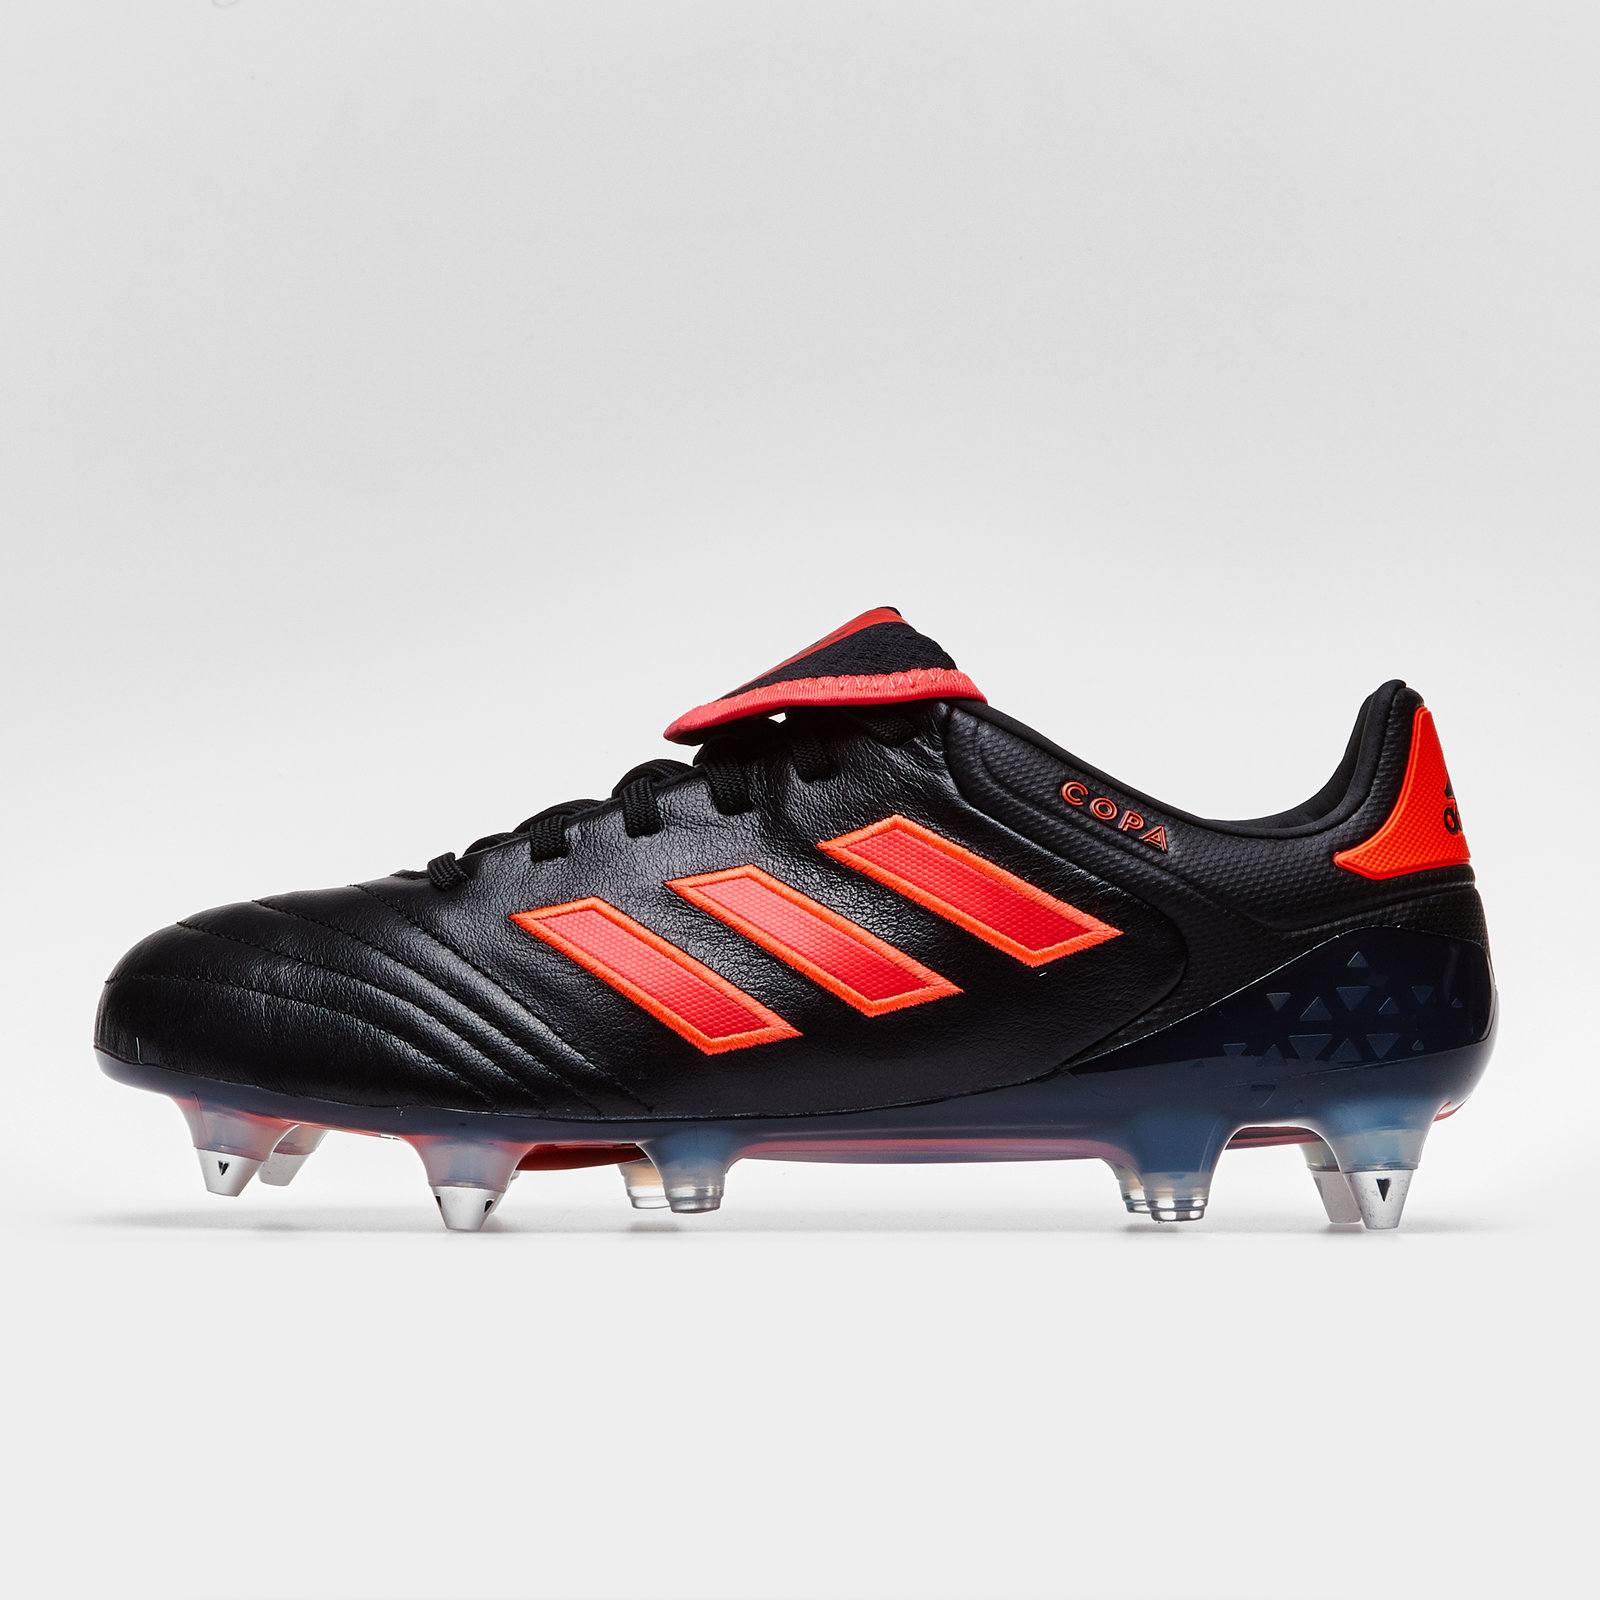 finest selection 9070c 7080f adidas Copa 17.1 SG Football Boots